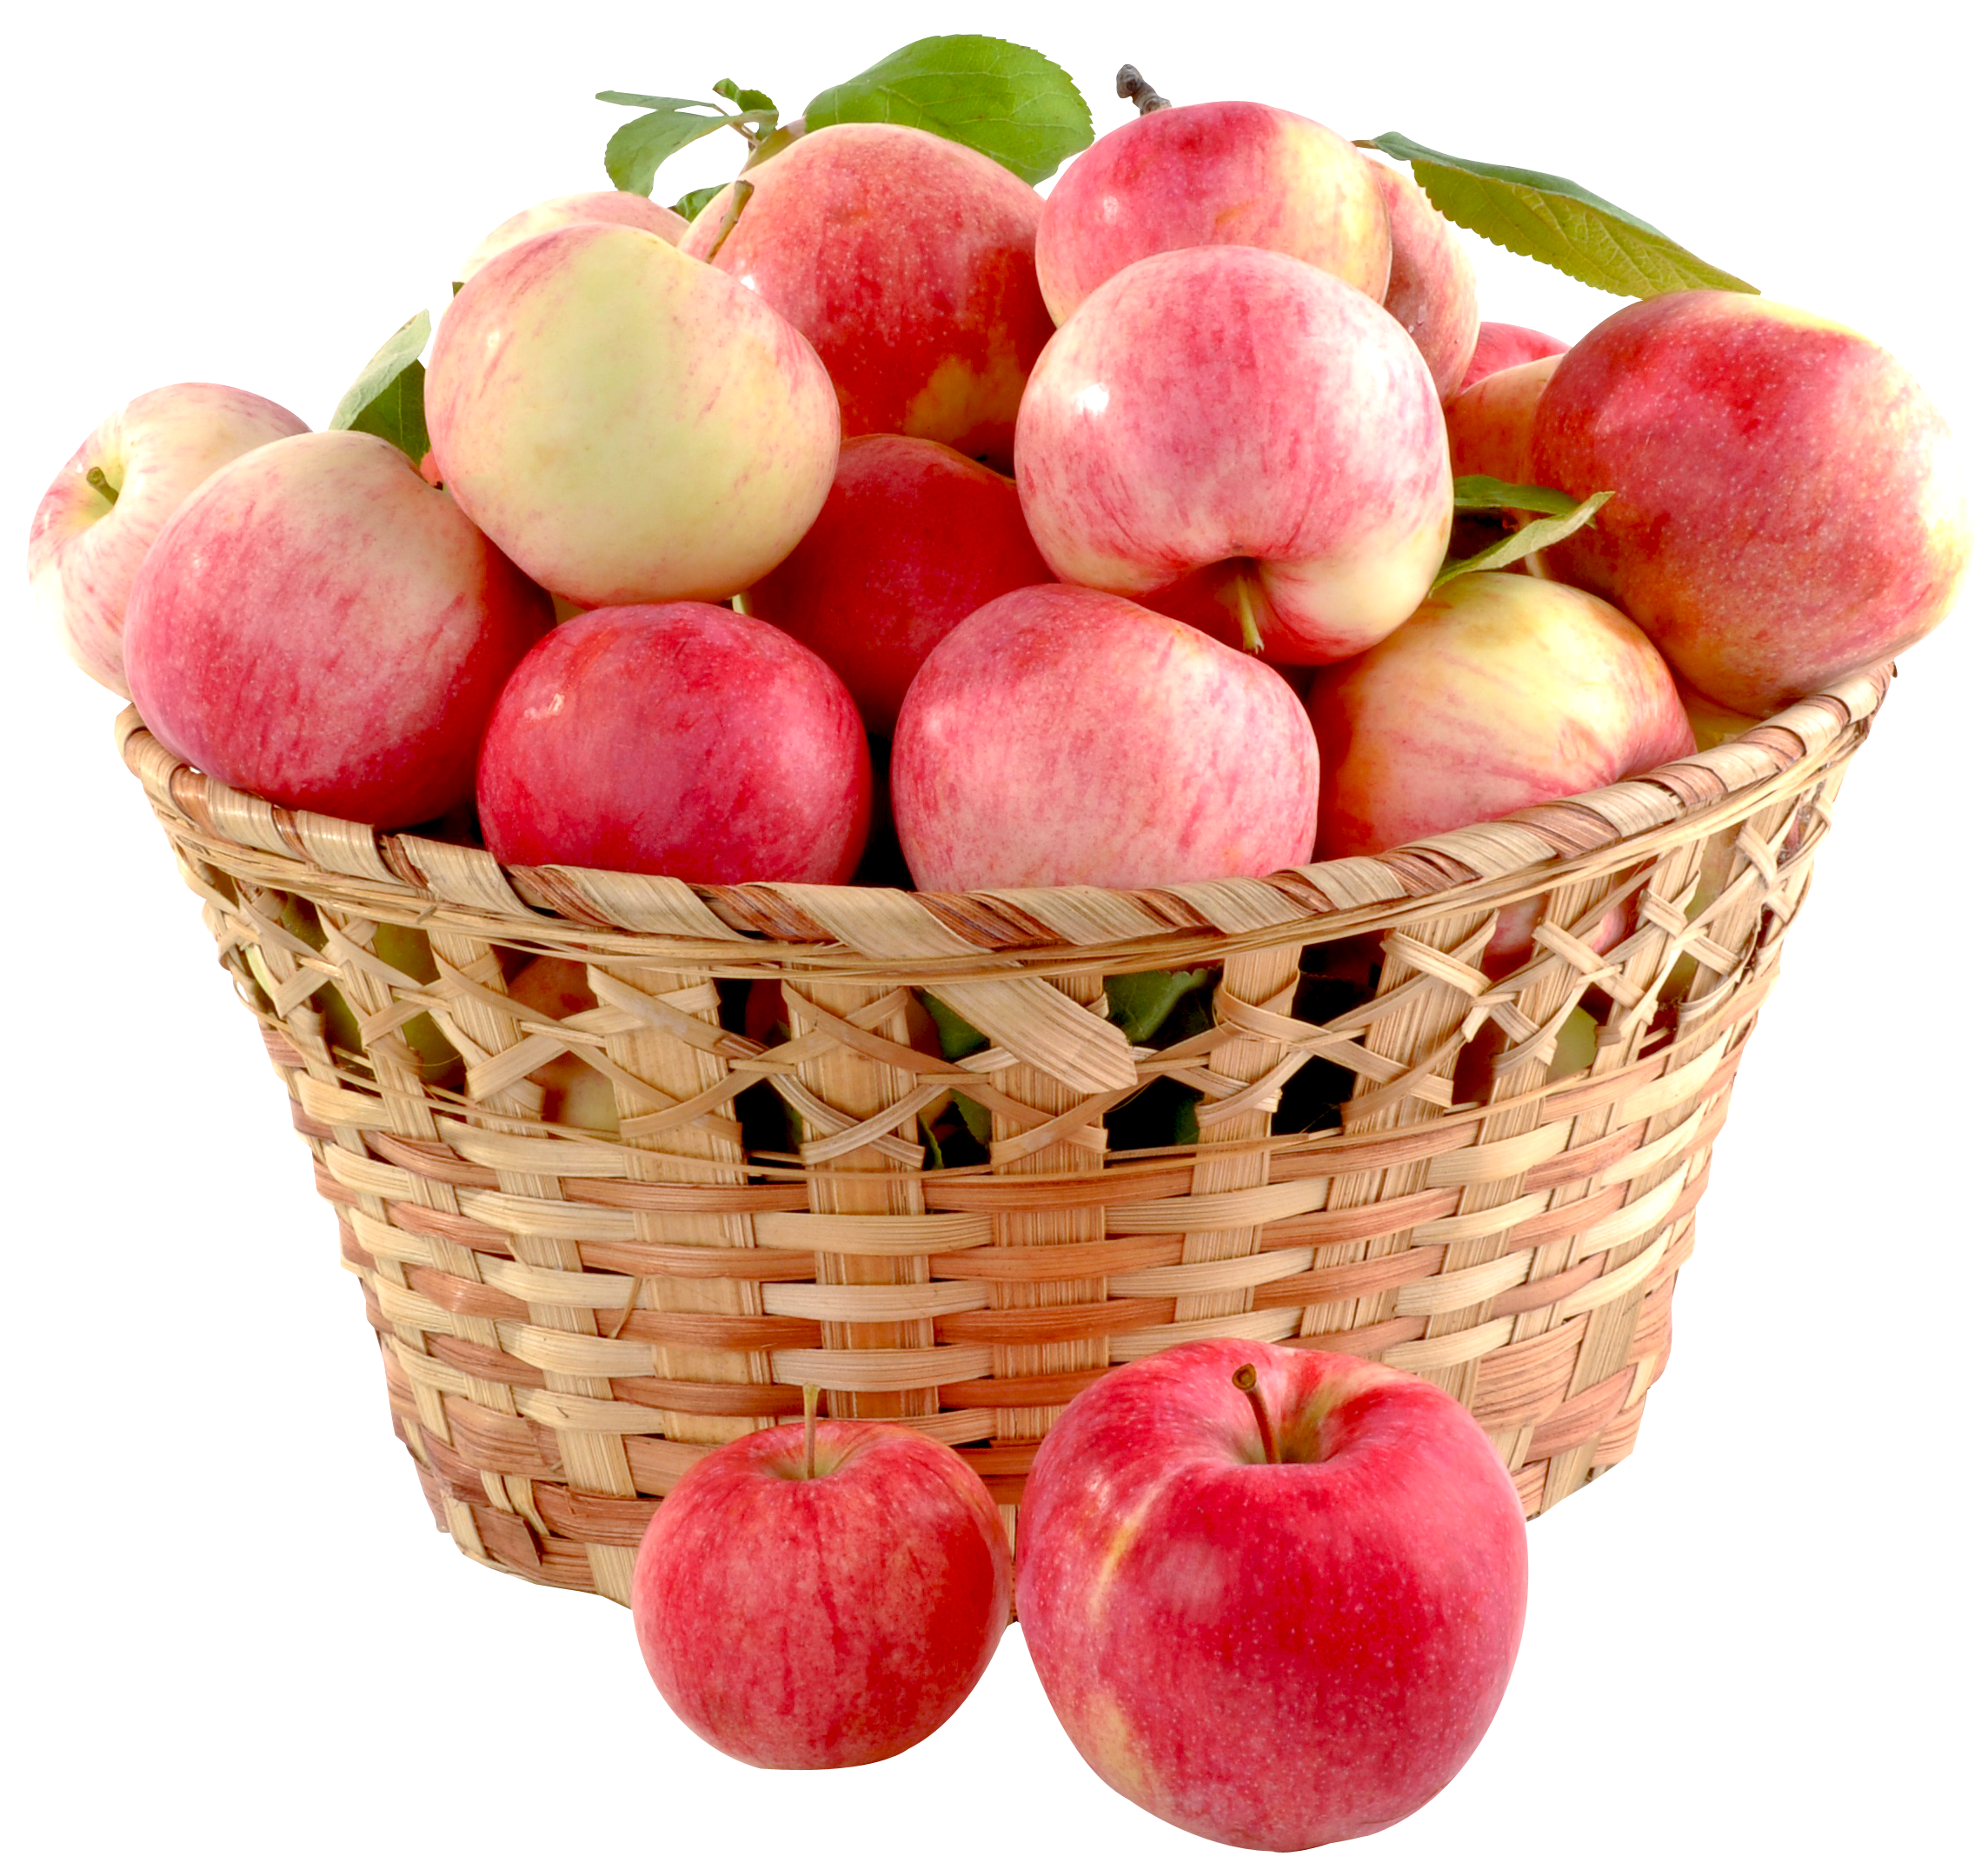 Apple healthy meal image